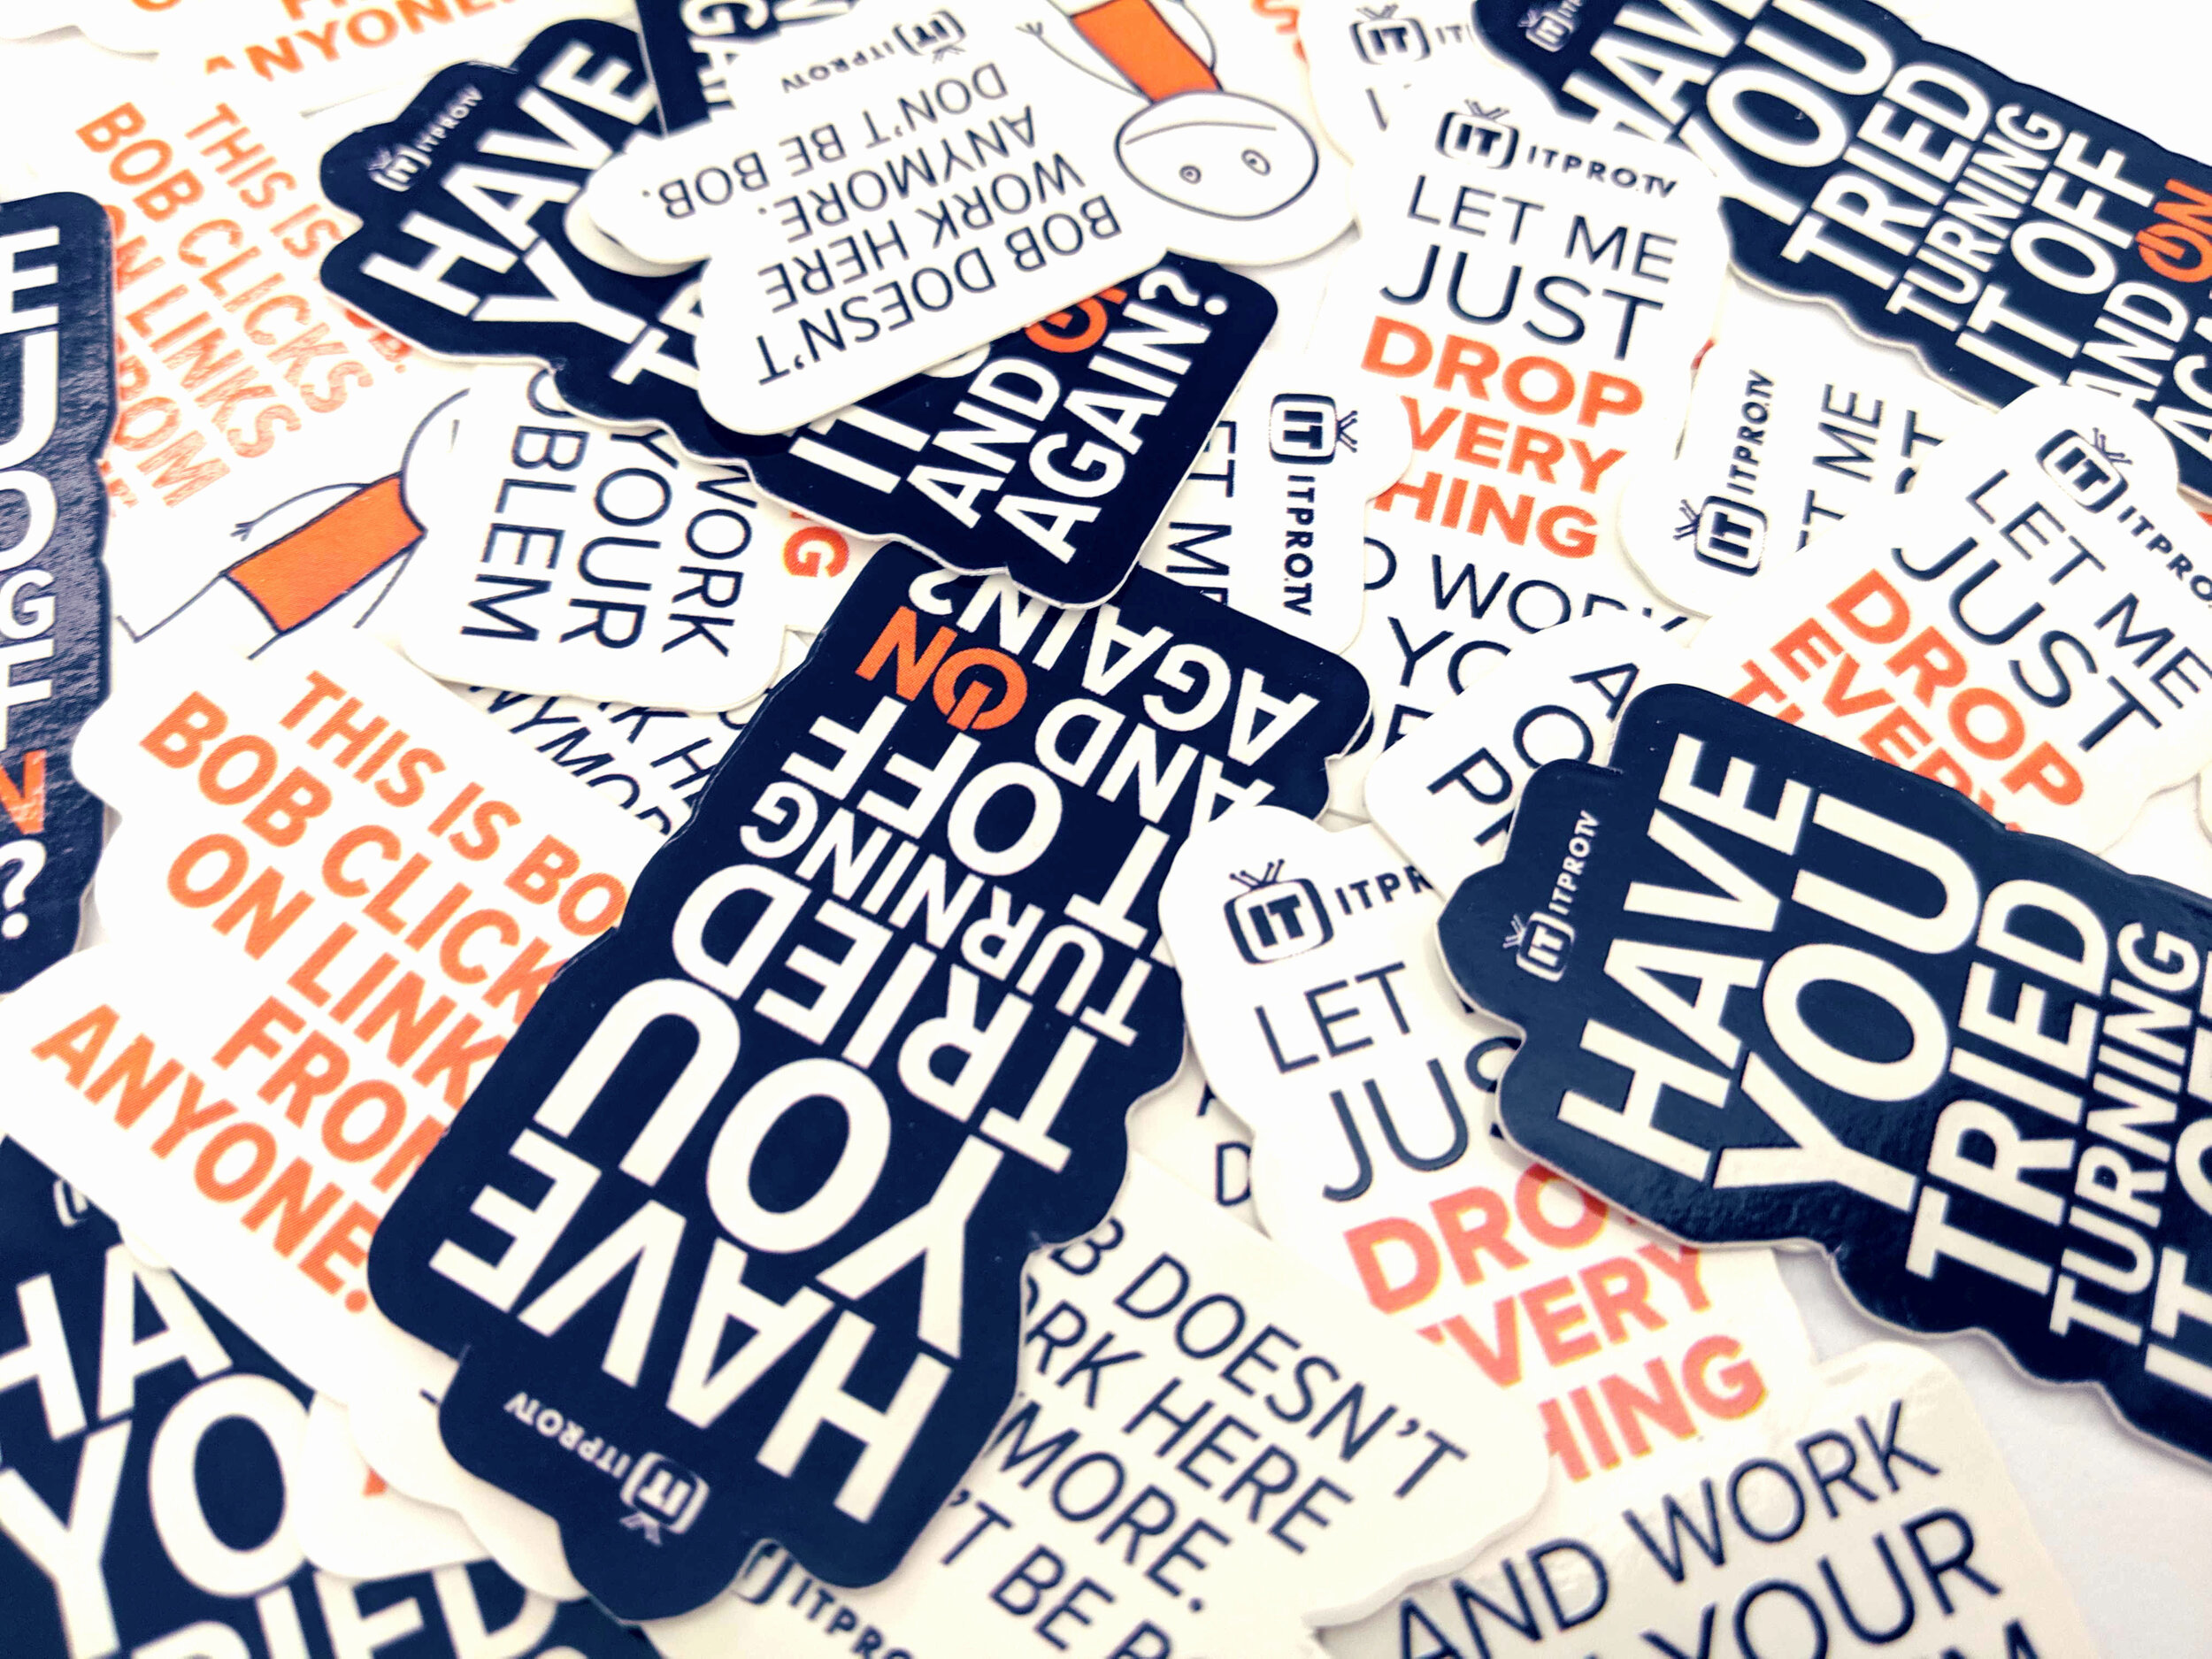 stickers - Created after the success and popularity of the Snarky Poster campaign to hand out at trade shows.